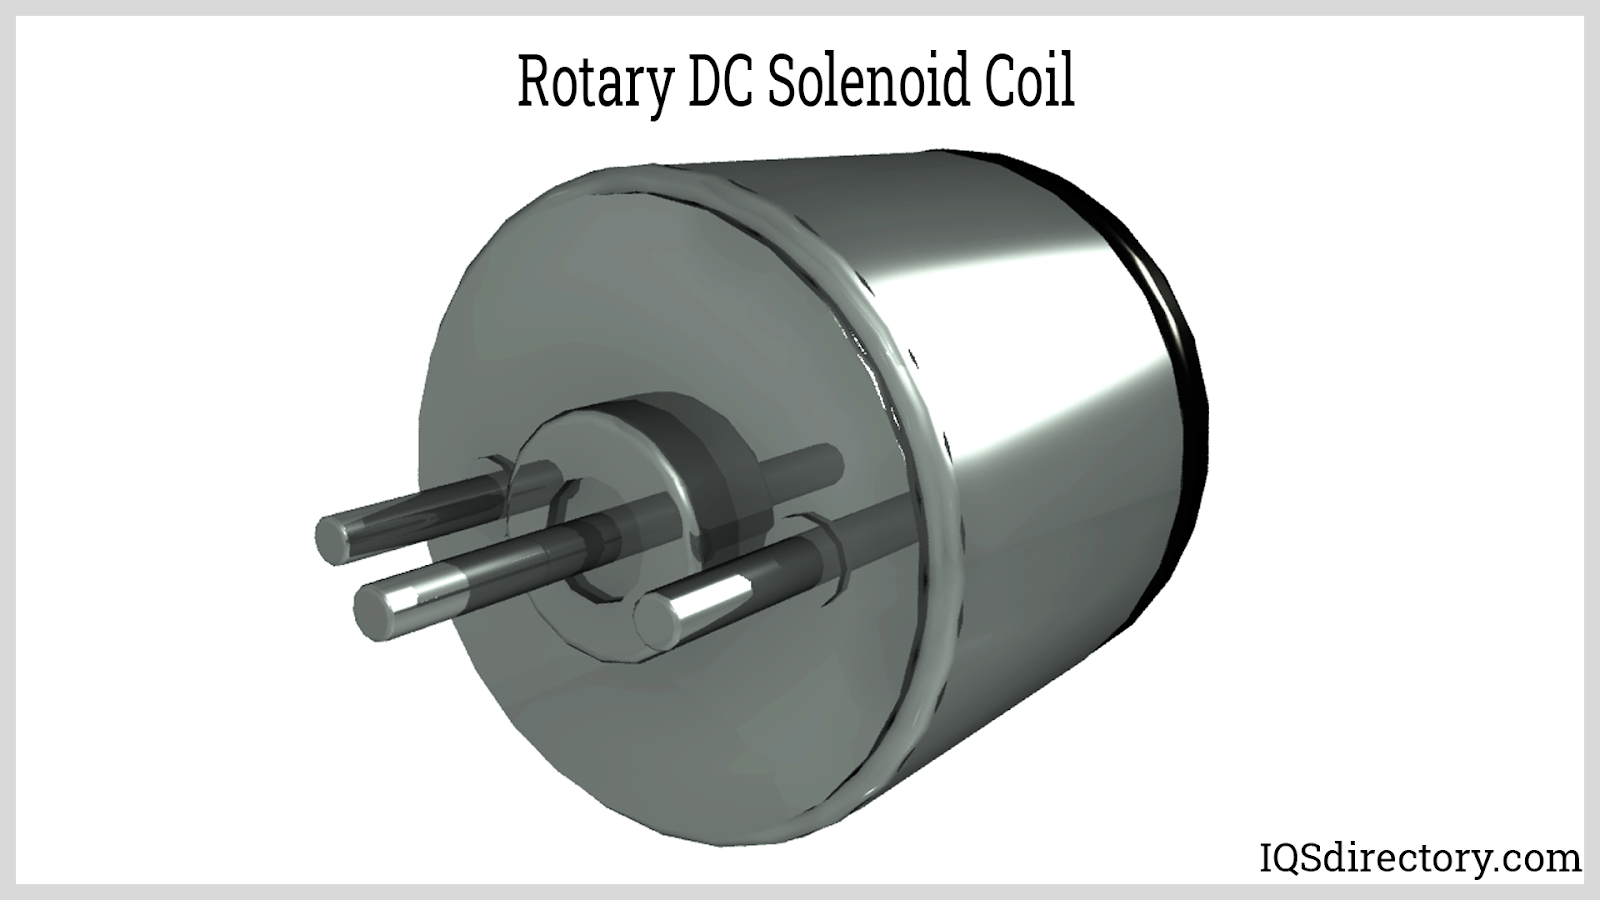 Rotary DC Solenoid Coil